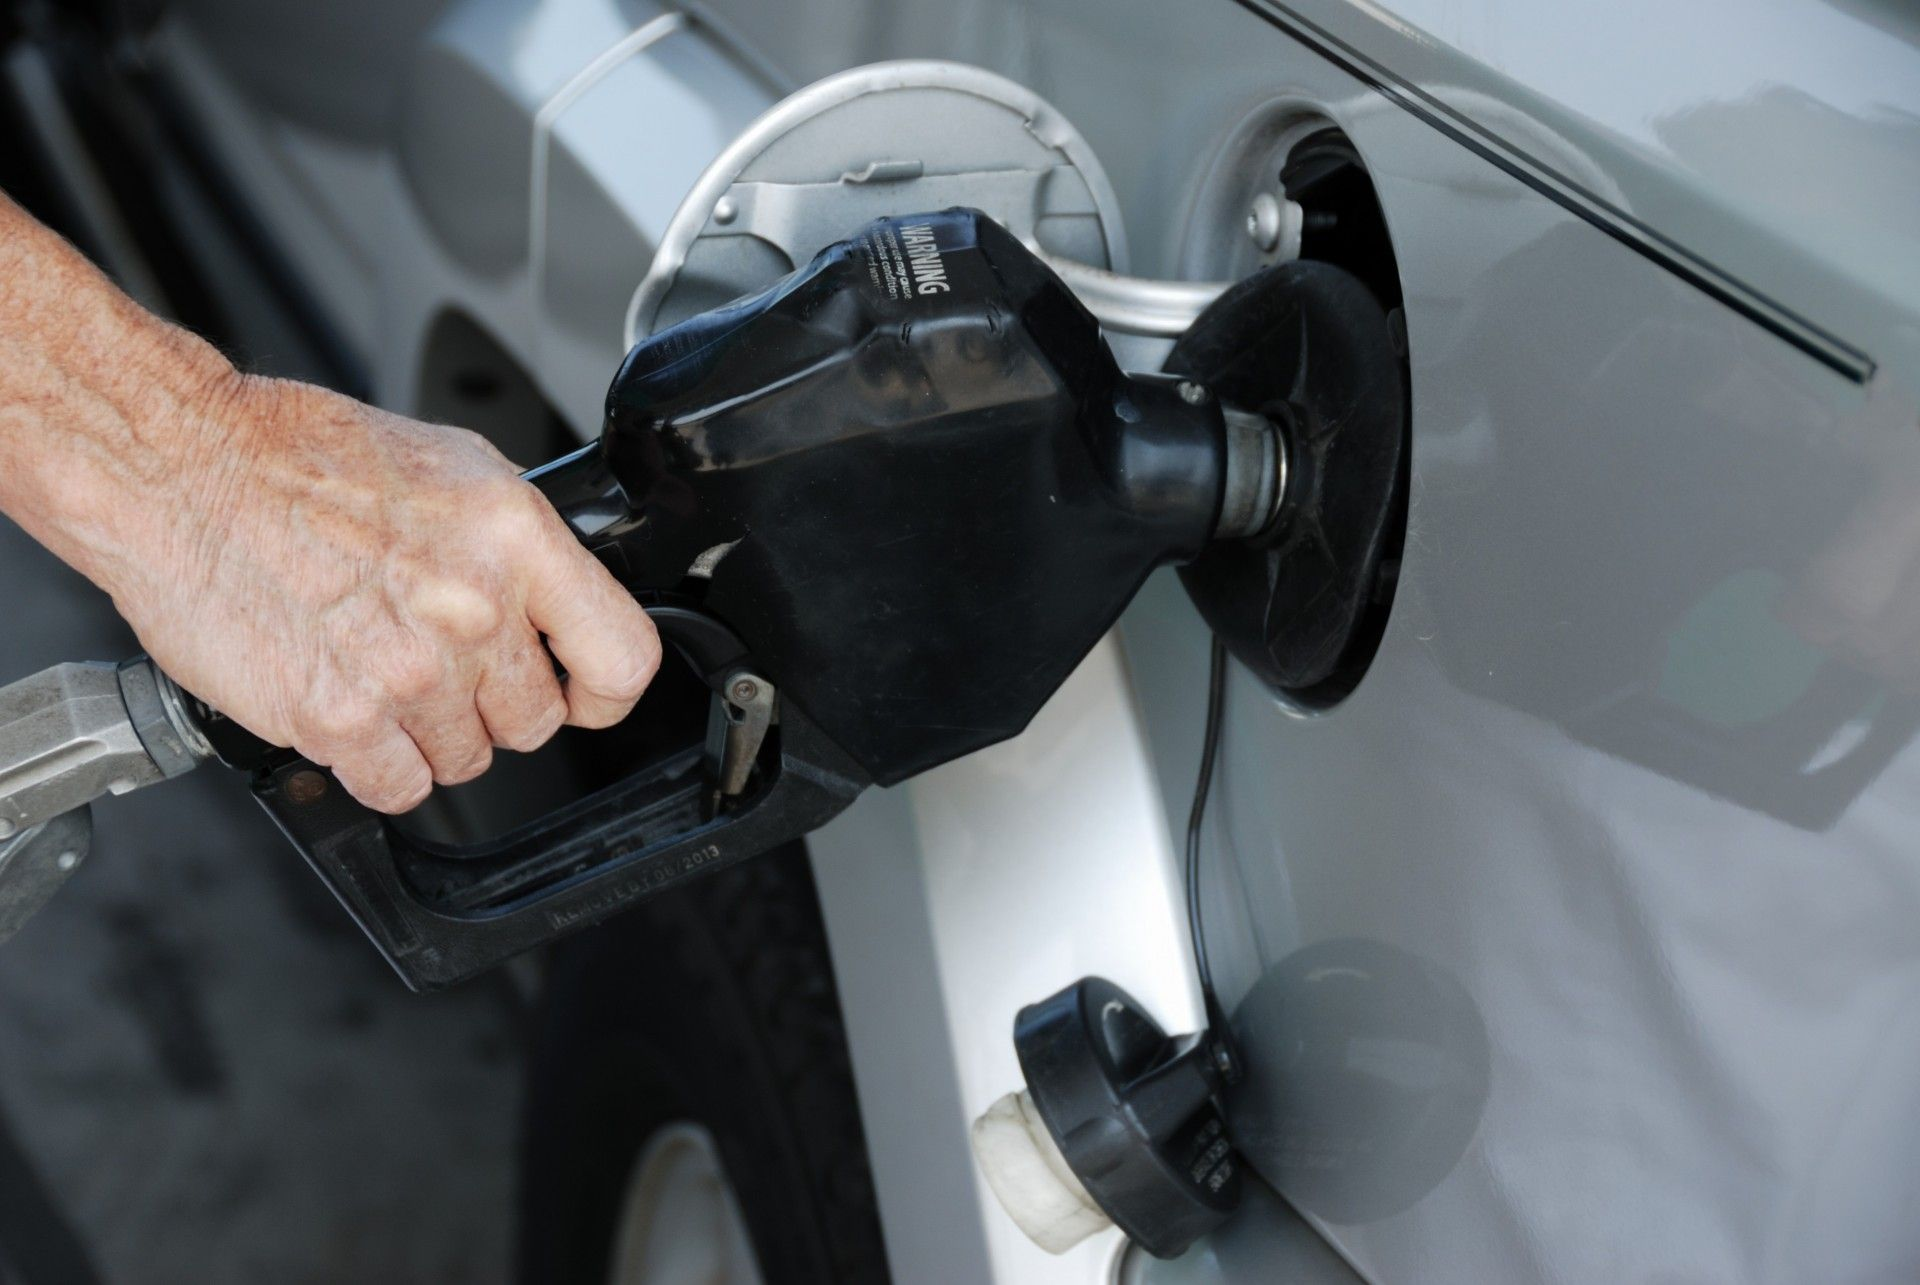 Outsmart high gas prices with these fuel saving tips from